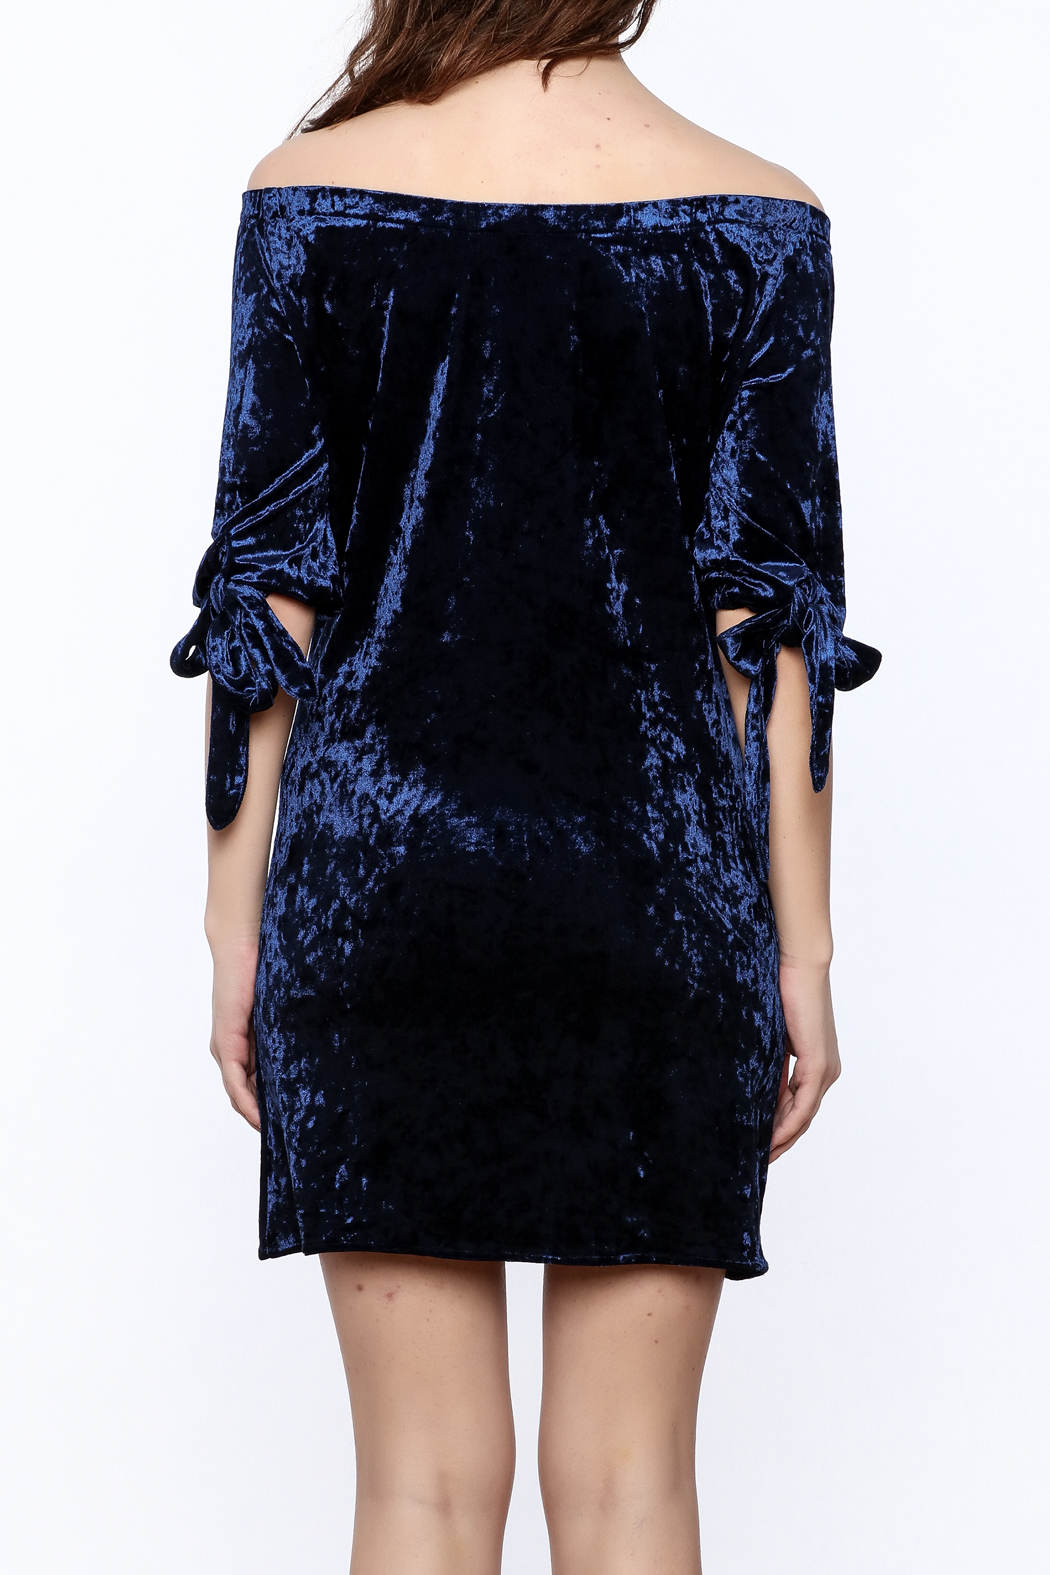 alex raw blue velvet dress from texas shoptiques. Black Bedroom Furniture Sets. Home Design Ideas